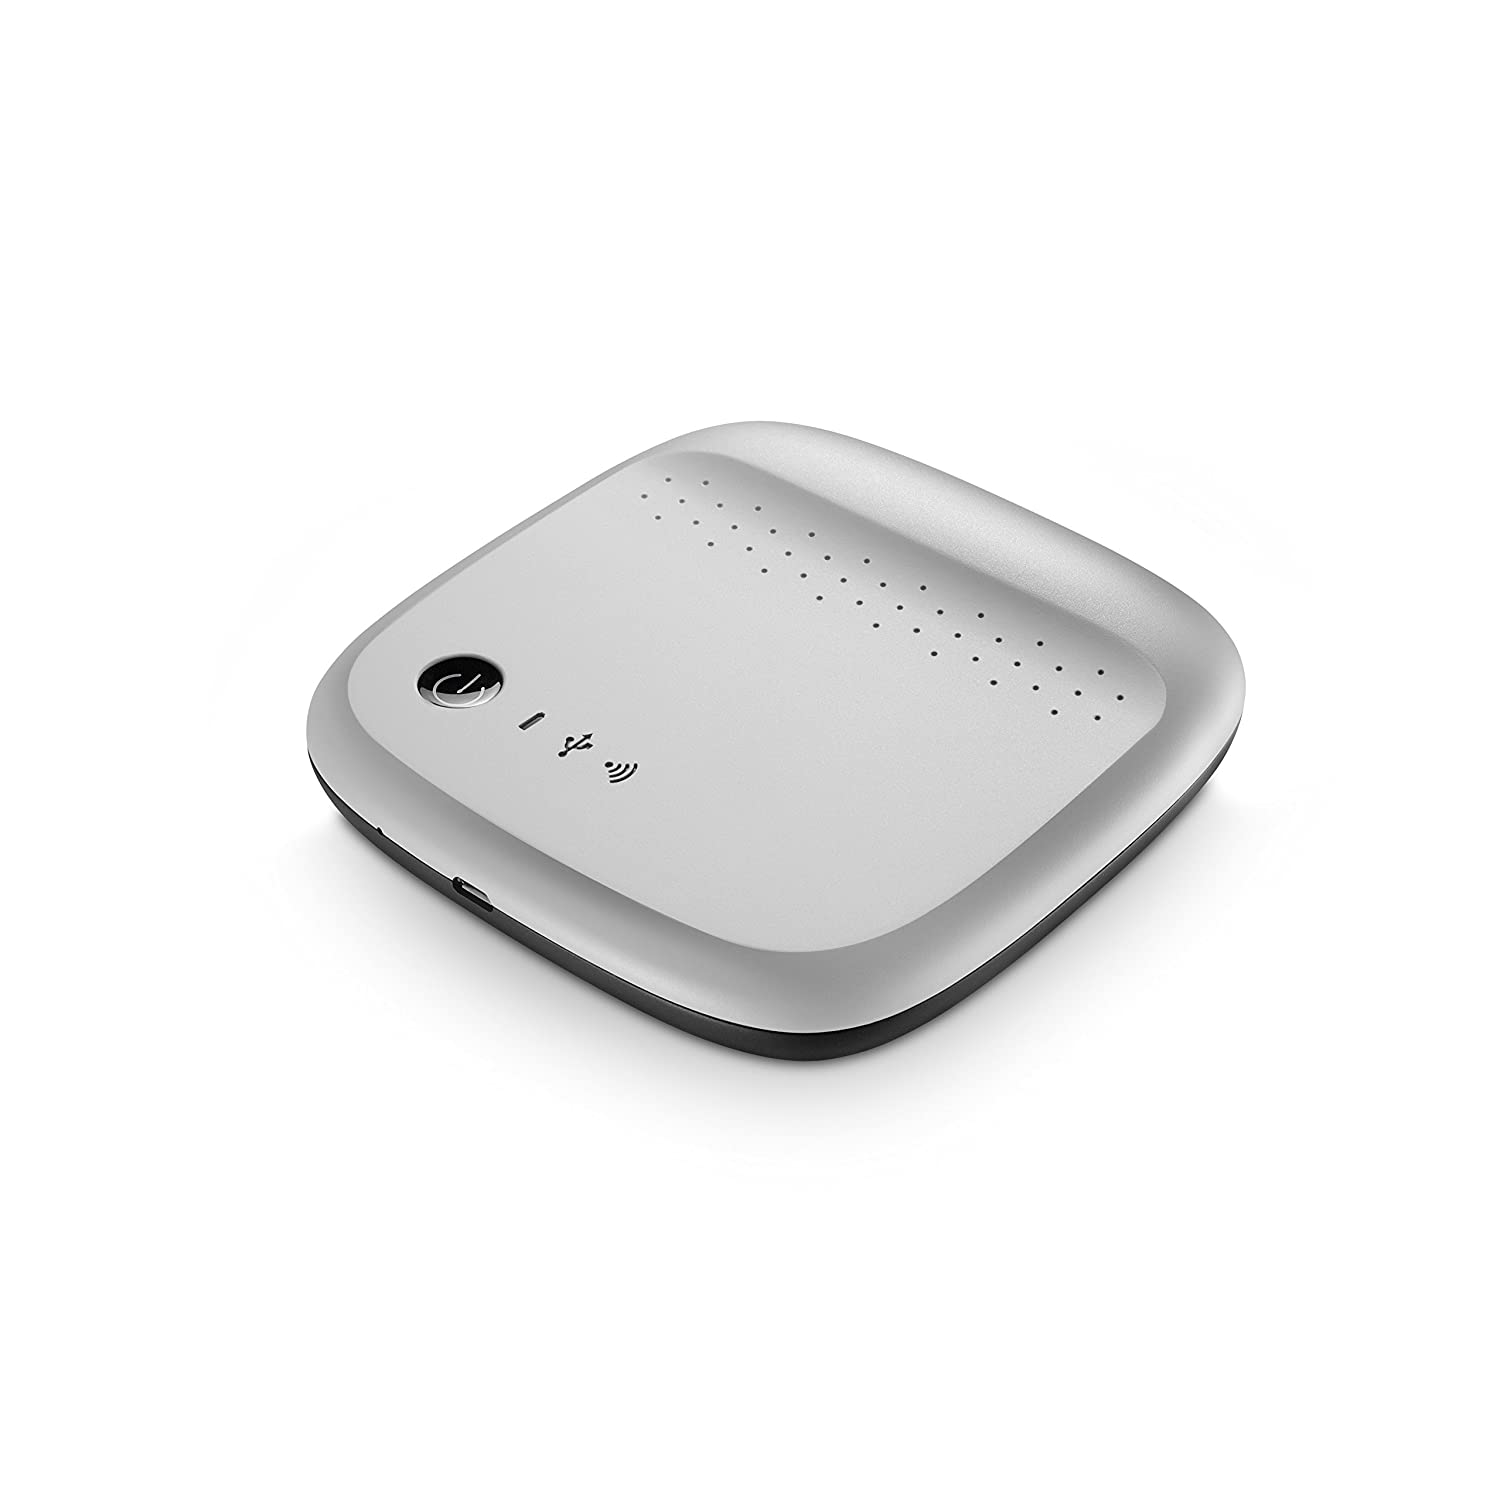 STDC500306 Wireless 500GB - White